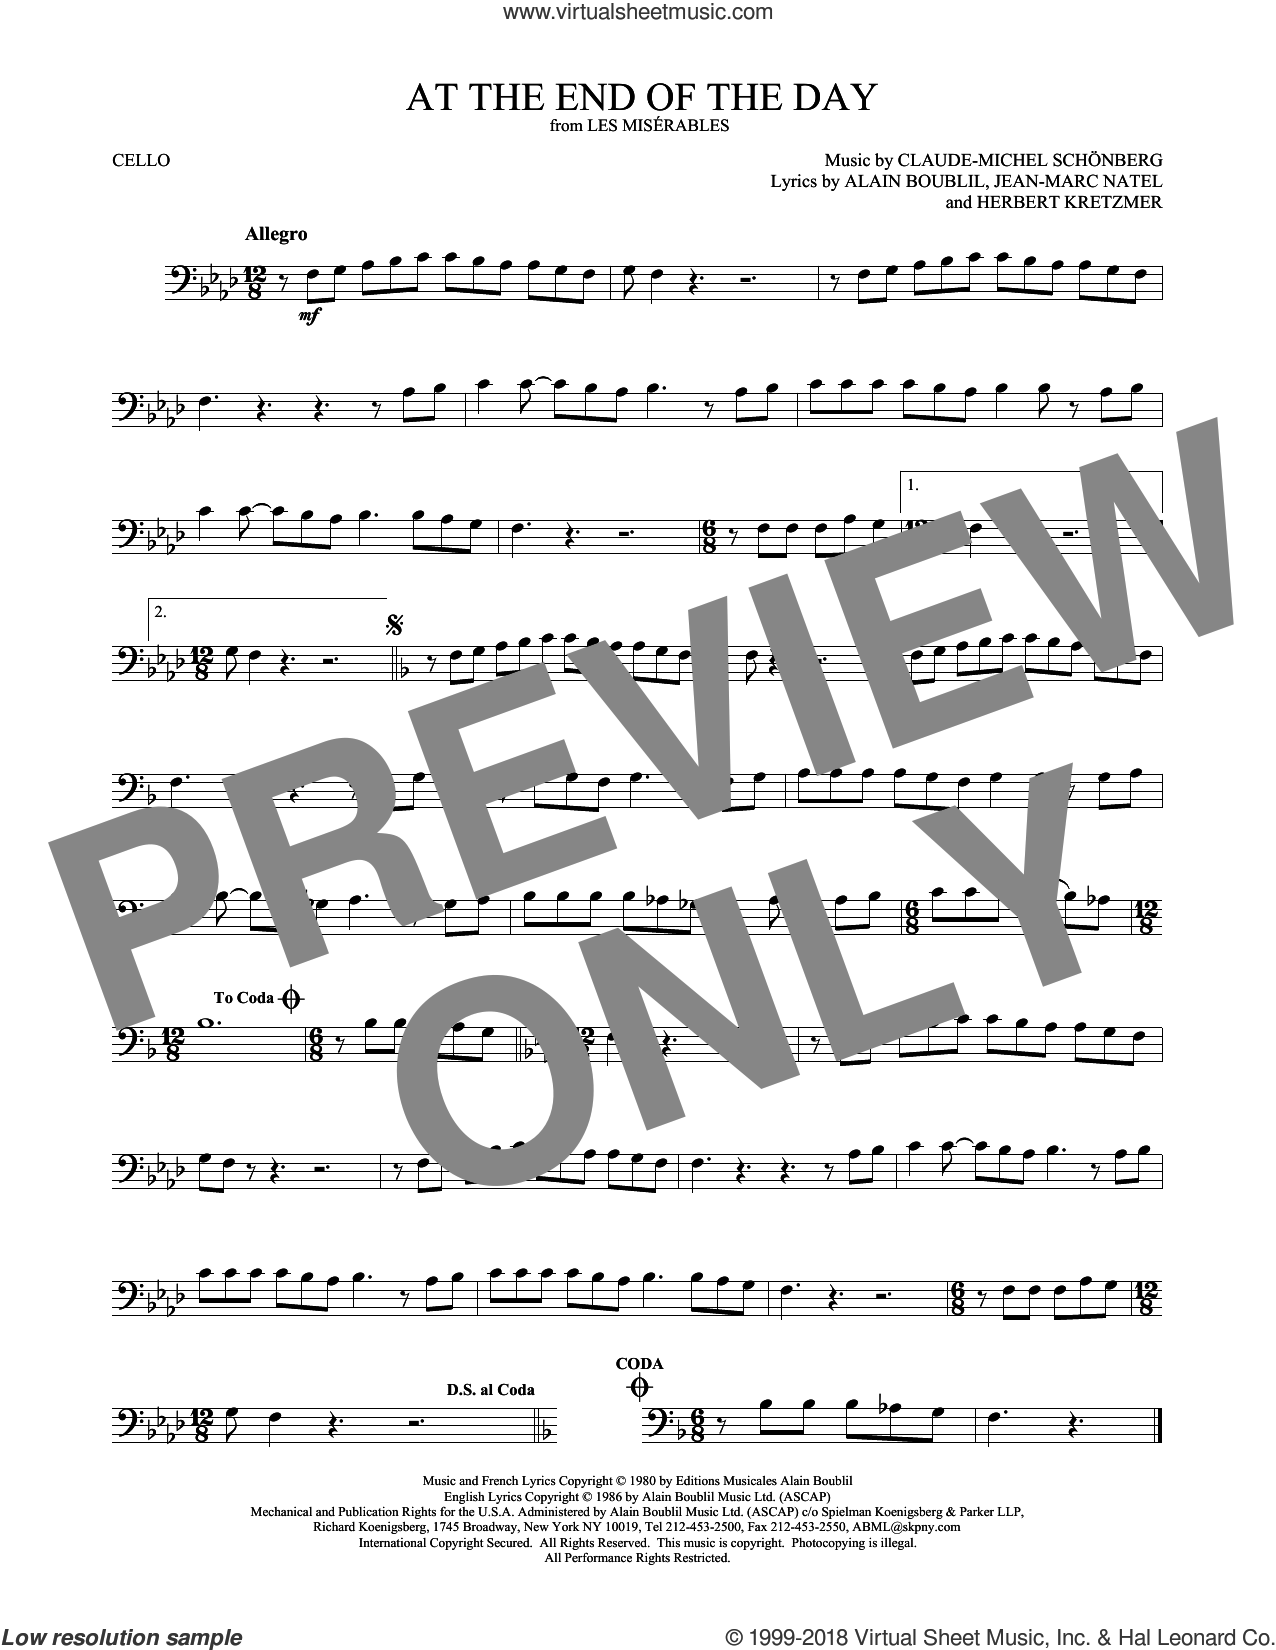 At The End Of The Day sheet music for cello solo by Alain Boublil, Claude-Michel Schonberg, Herbert Kretzmer and Jean-Marc Natel, intermediate skill level